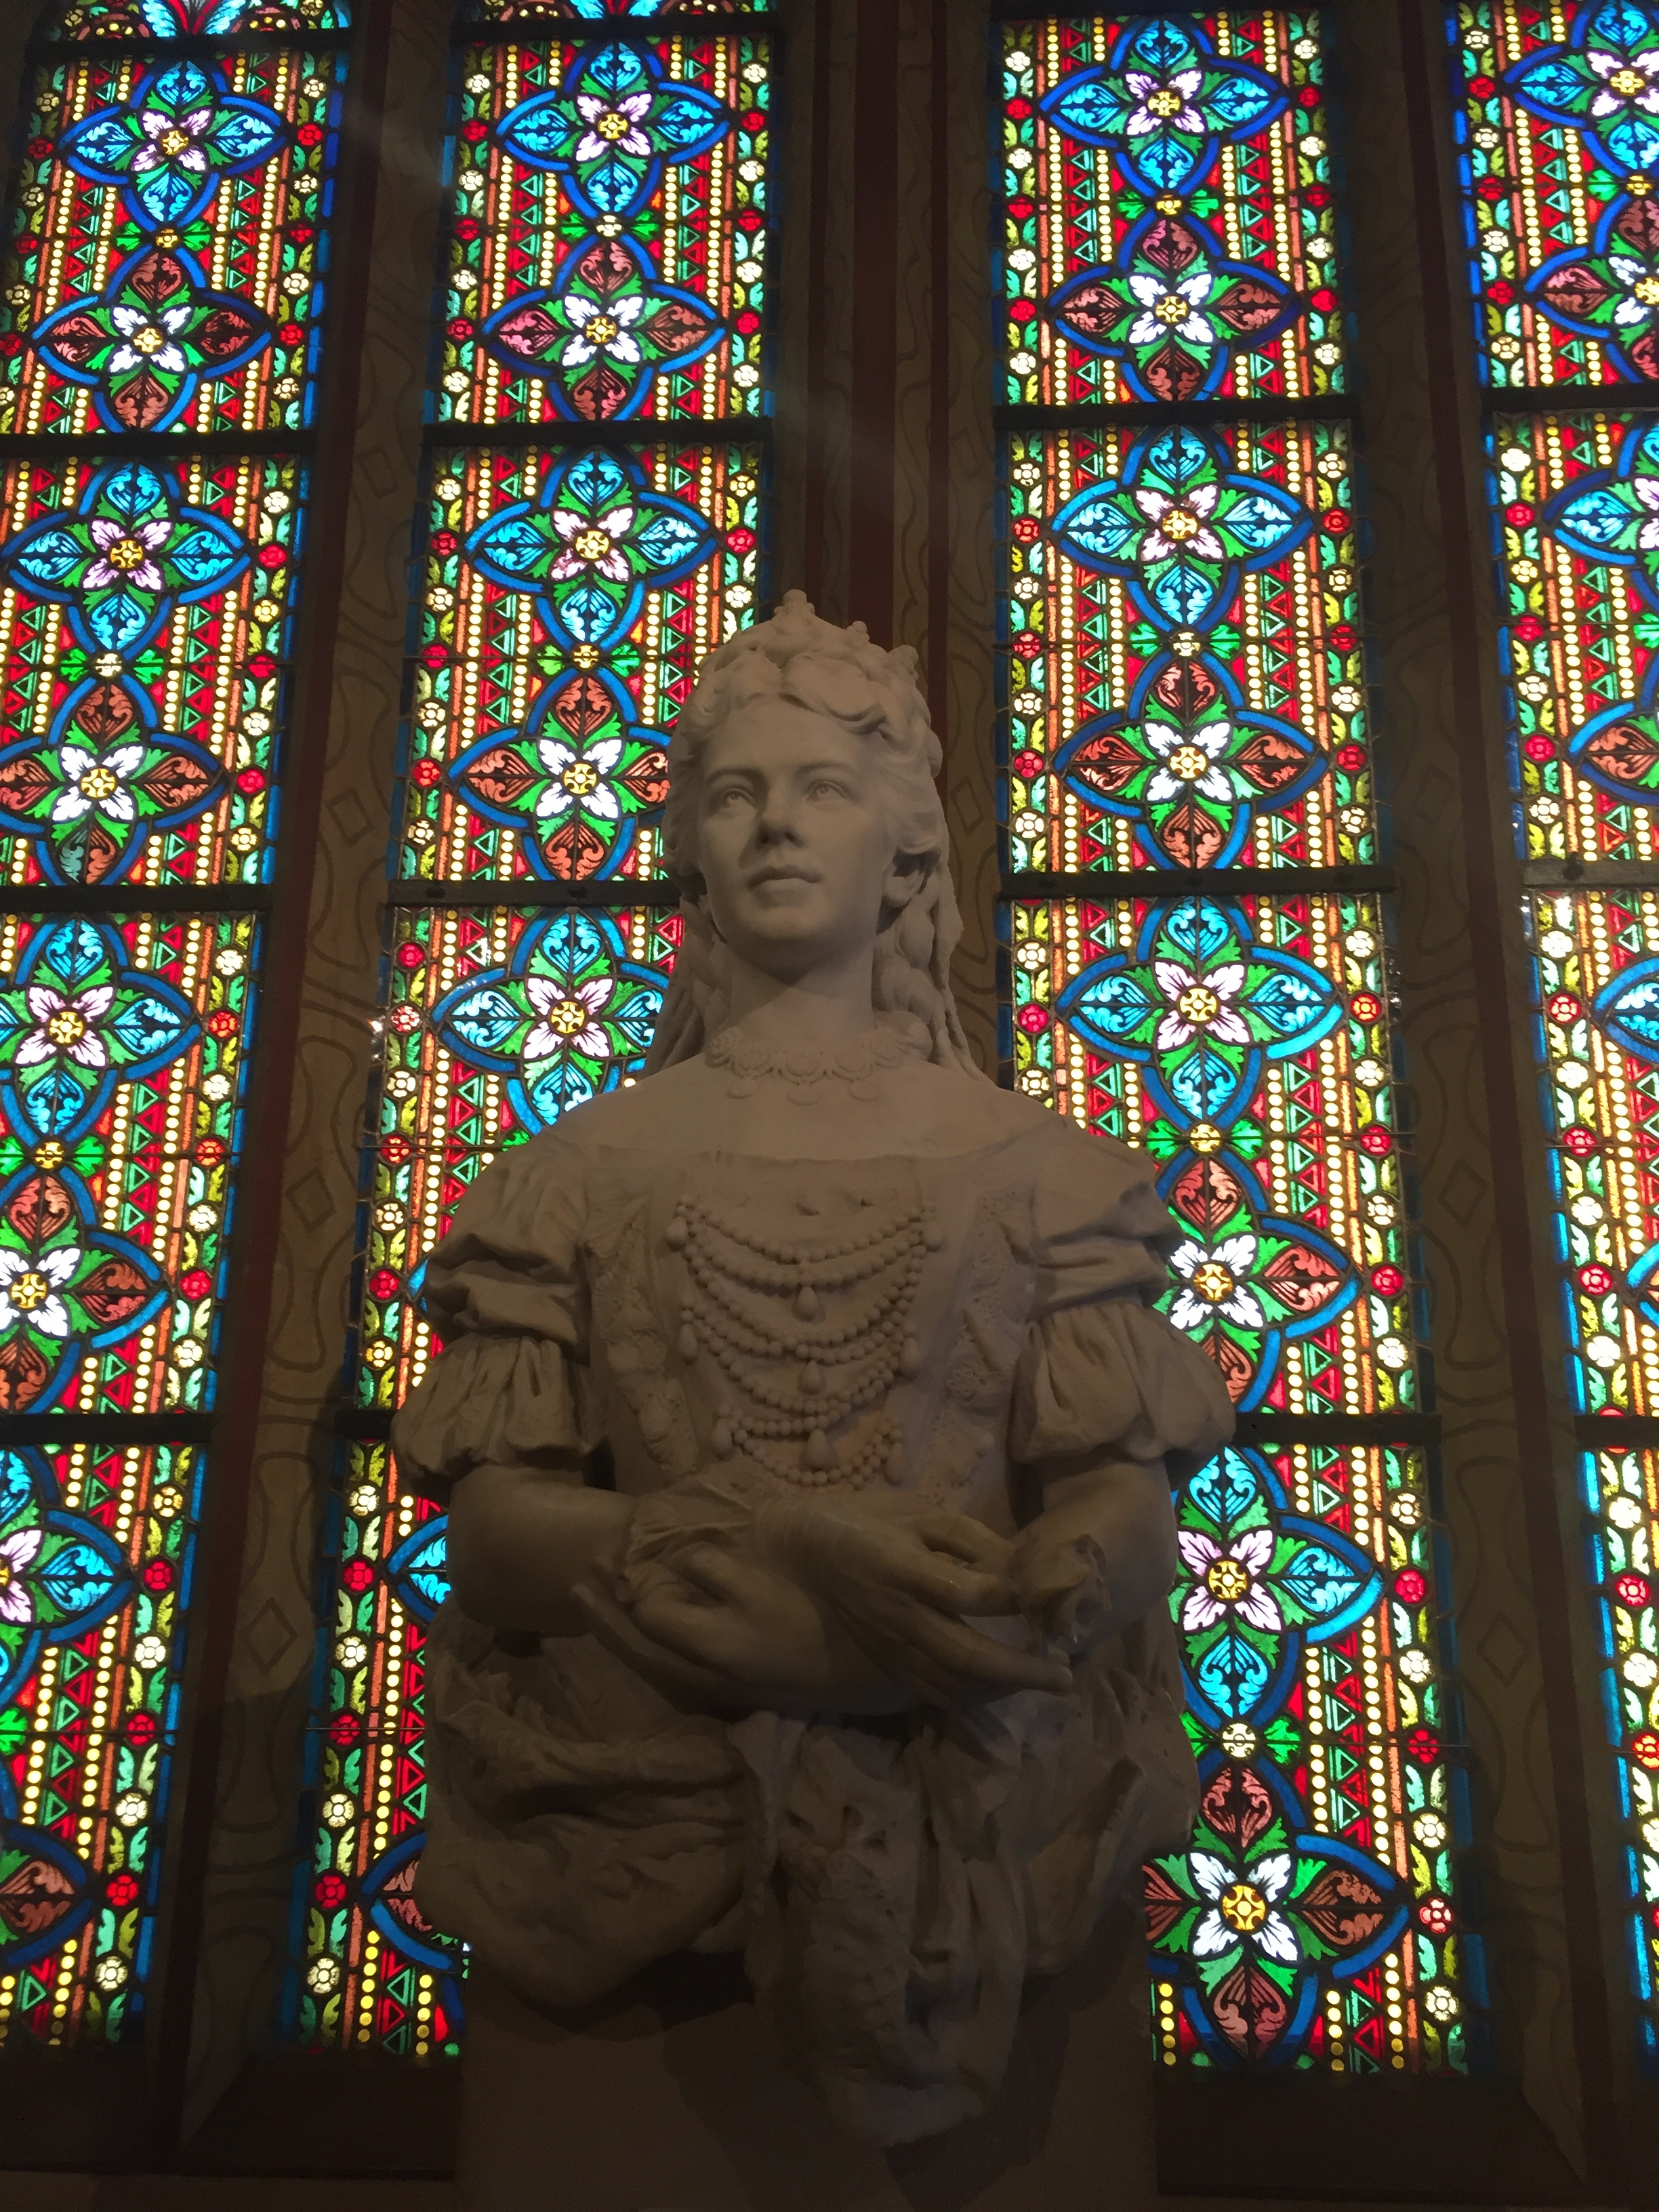 Statue of The late Queen Elisabeth of Hungary in front of stain glass windows